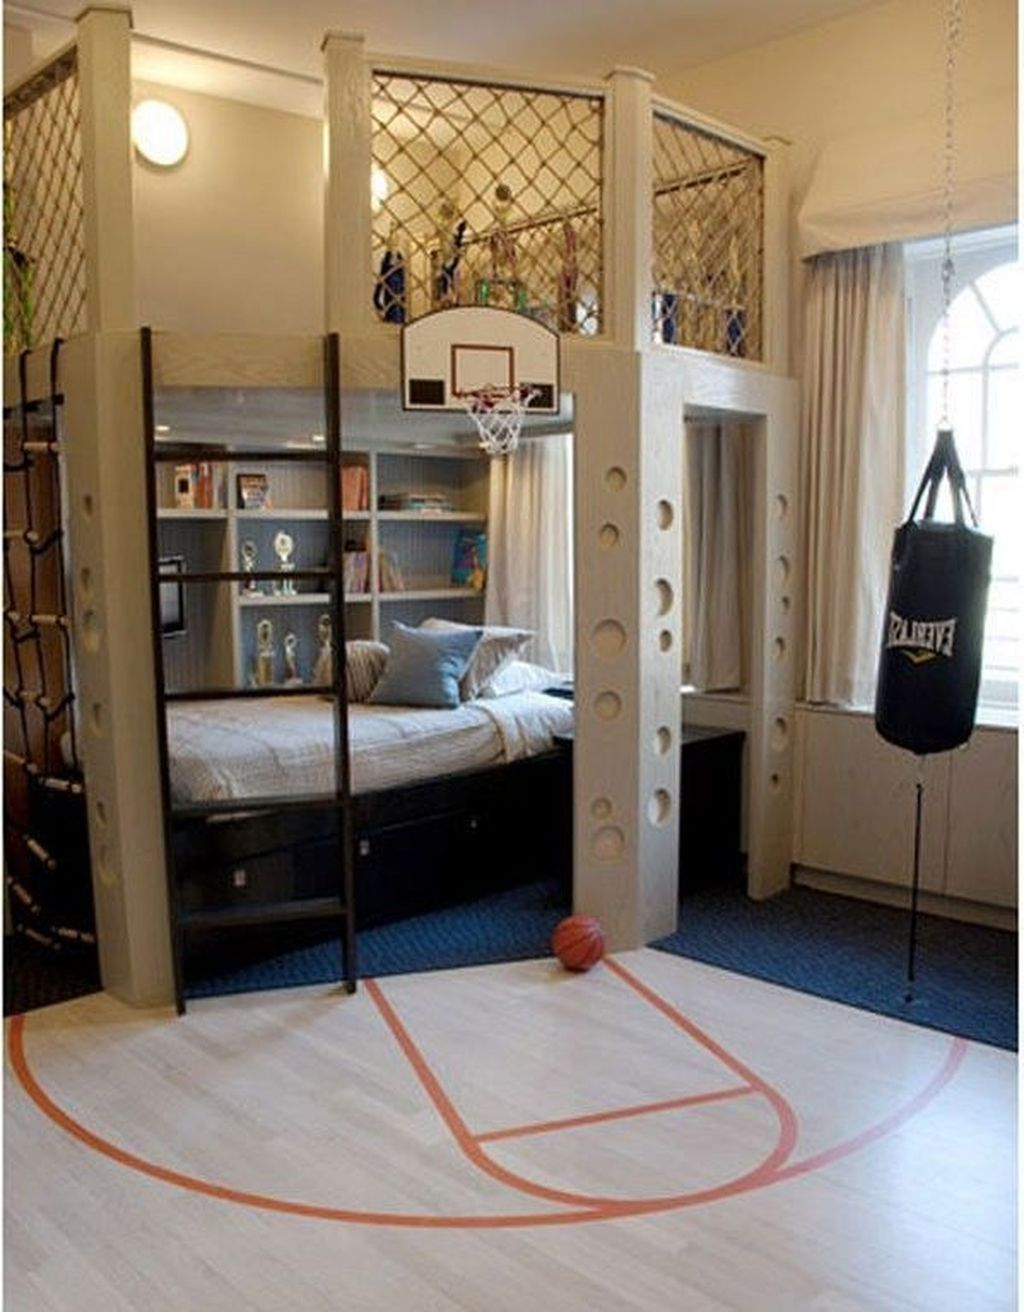 49 Fabulous Sport Bedroom Ideas For Boys images